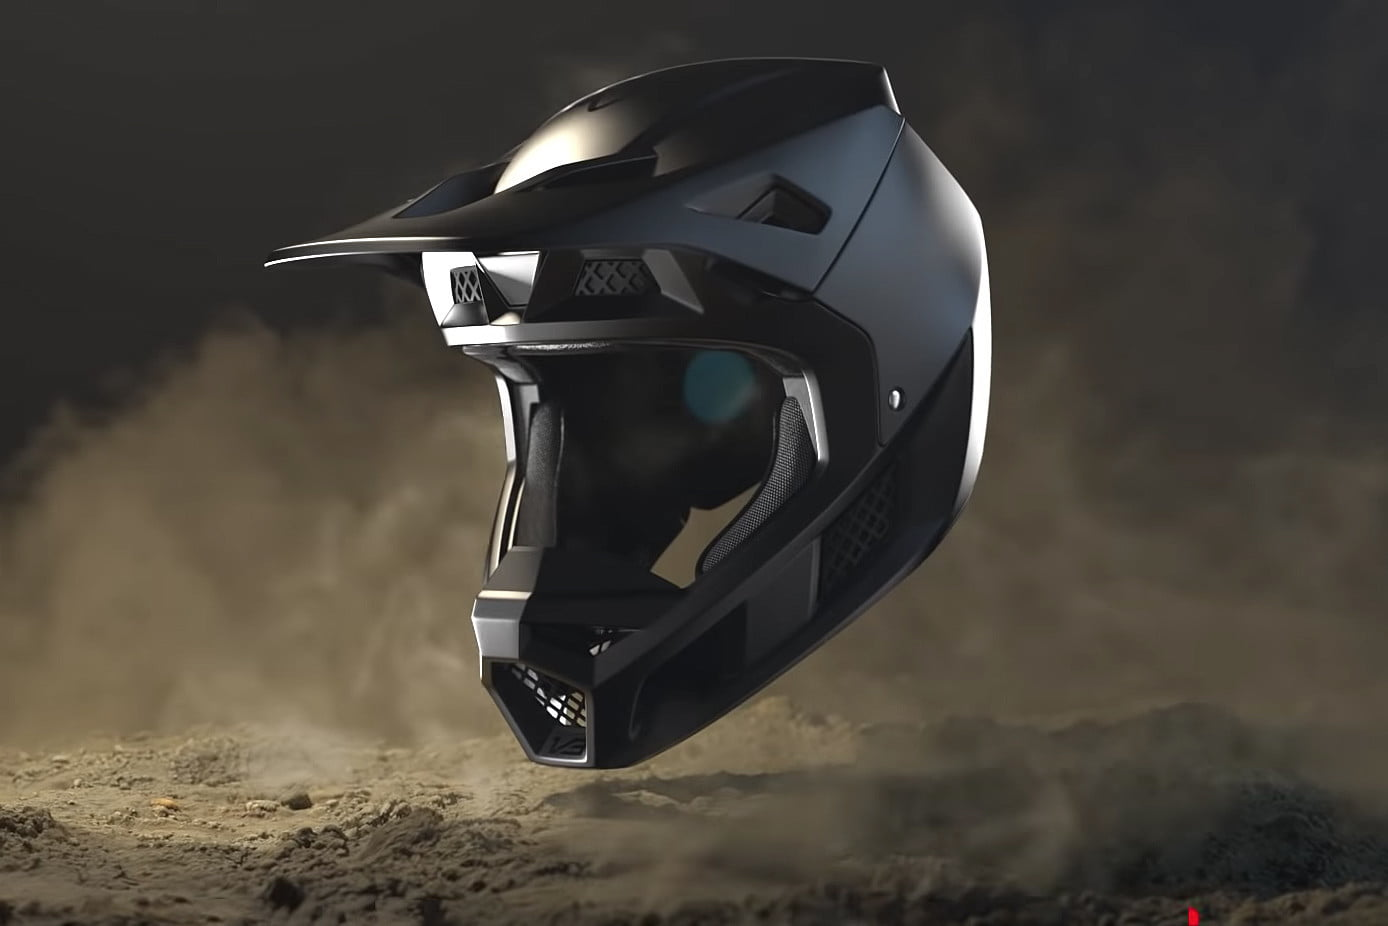 This Company Took Cues From The Human Body To Build A Better Helmet Digital Trends